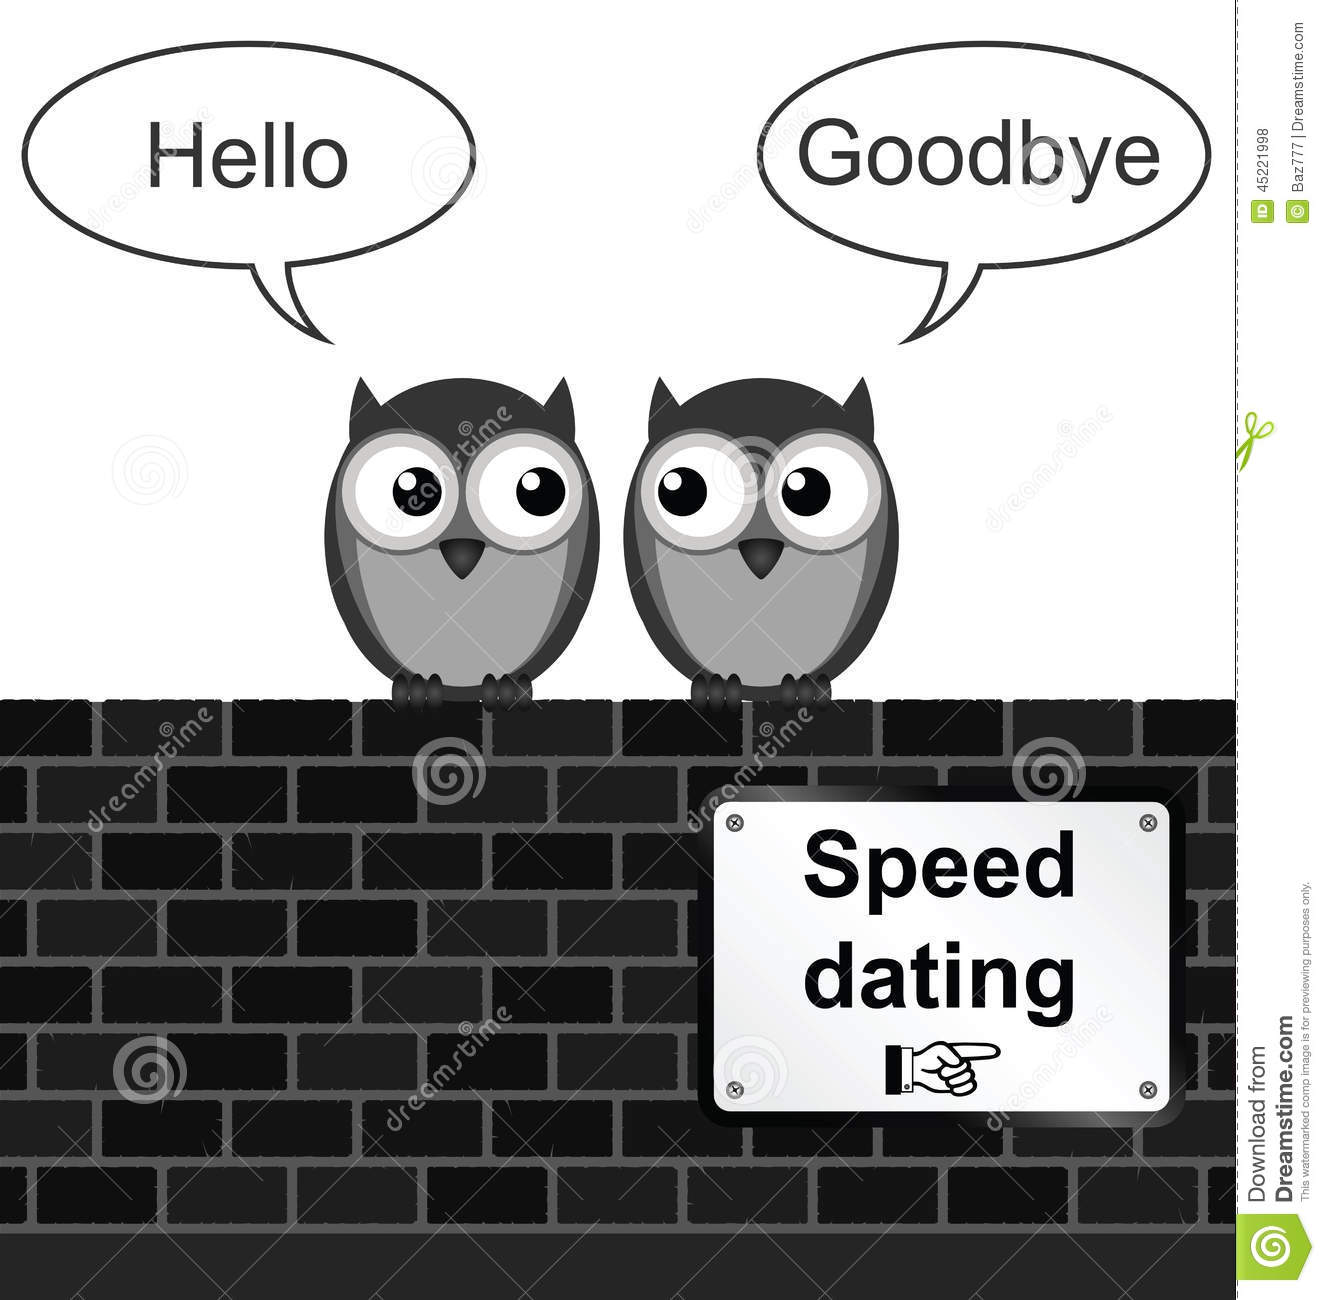 Speed dating clock